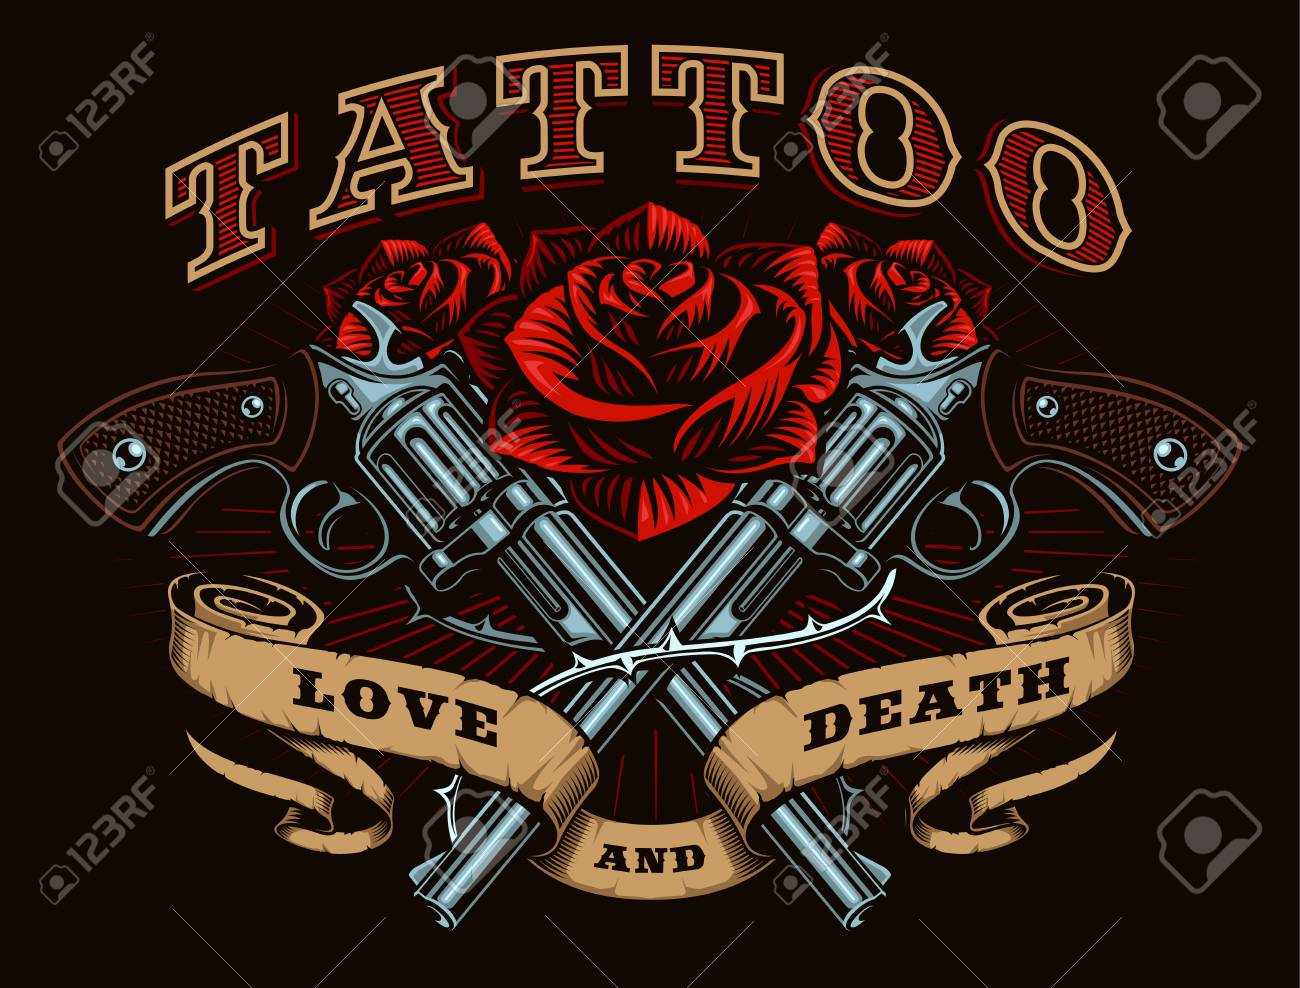 Guns And Roses Tattoo Design Tattoo Art With Revolvers Roses